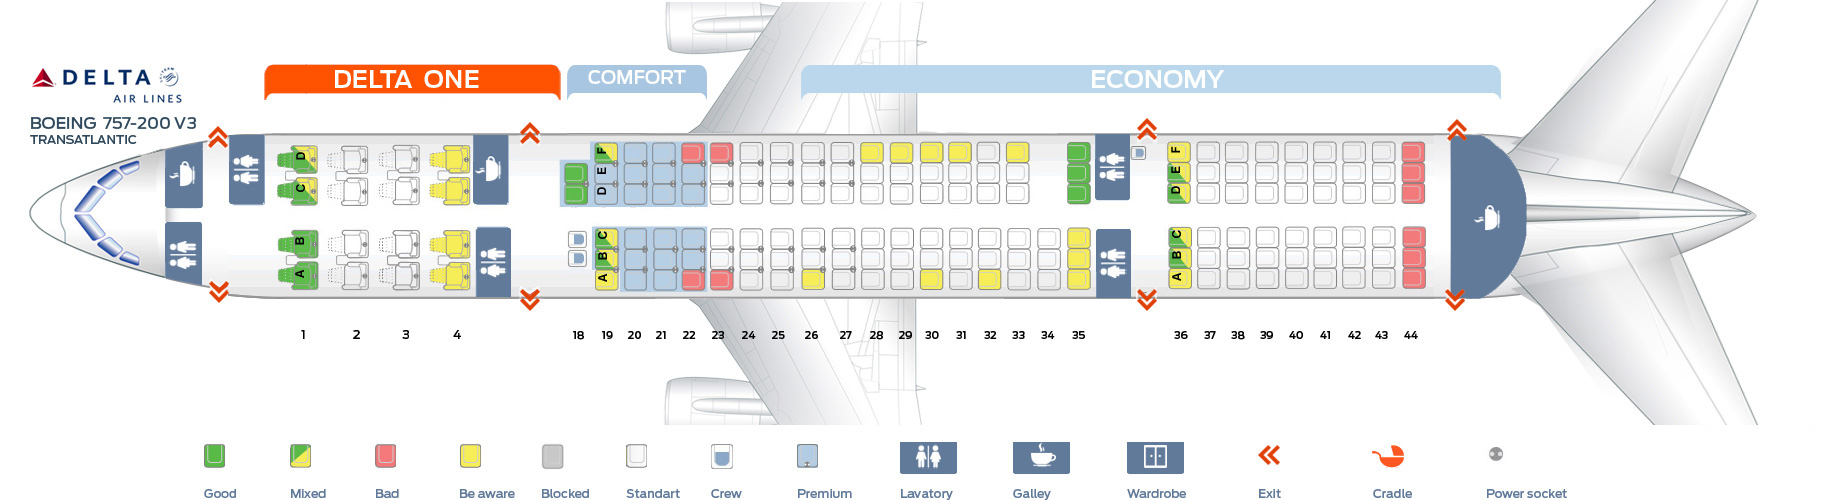 Seat_map_Delta_Airlines_Boeing_757-200_v3_transatlantic